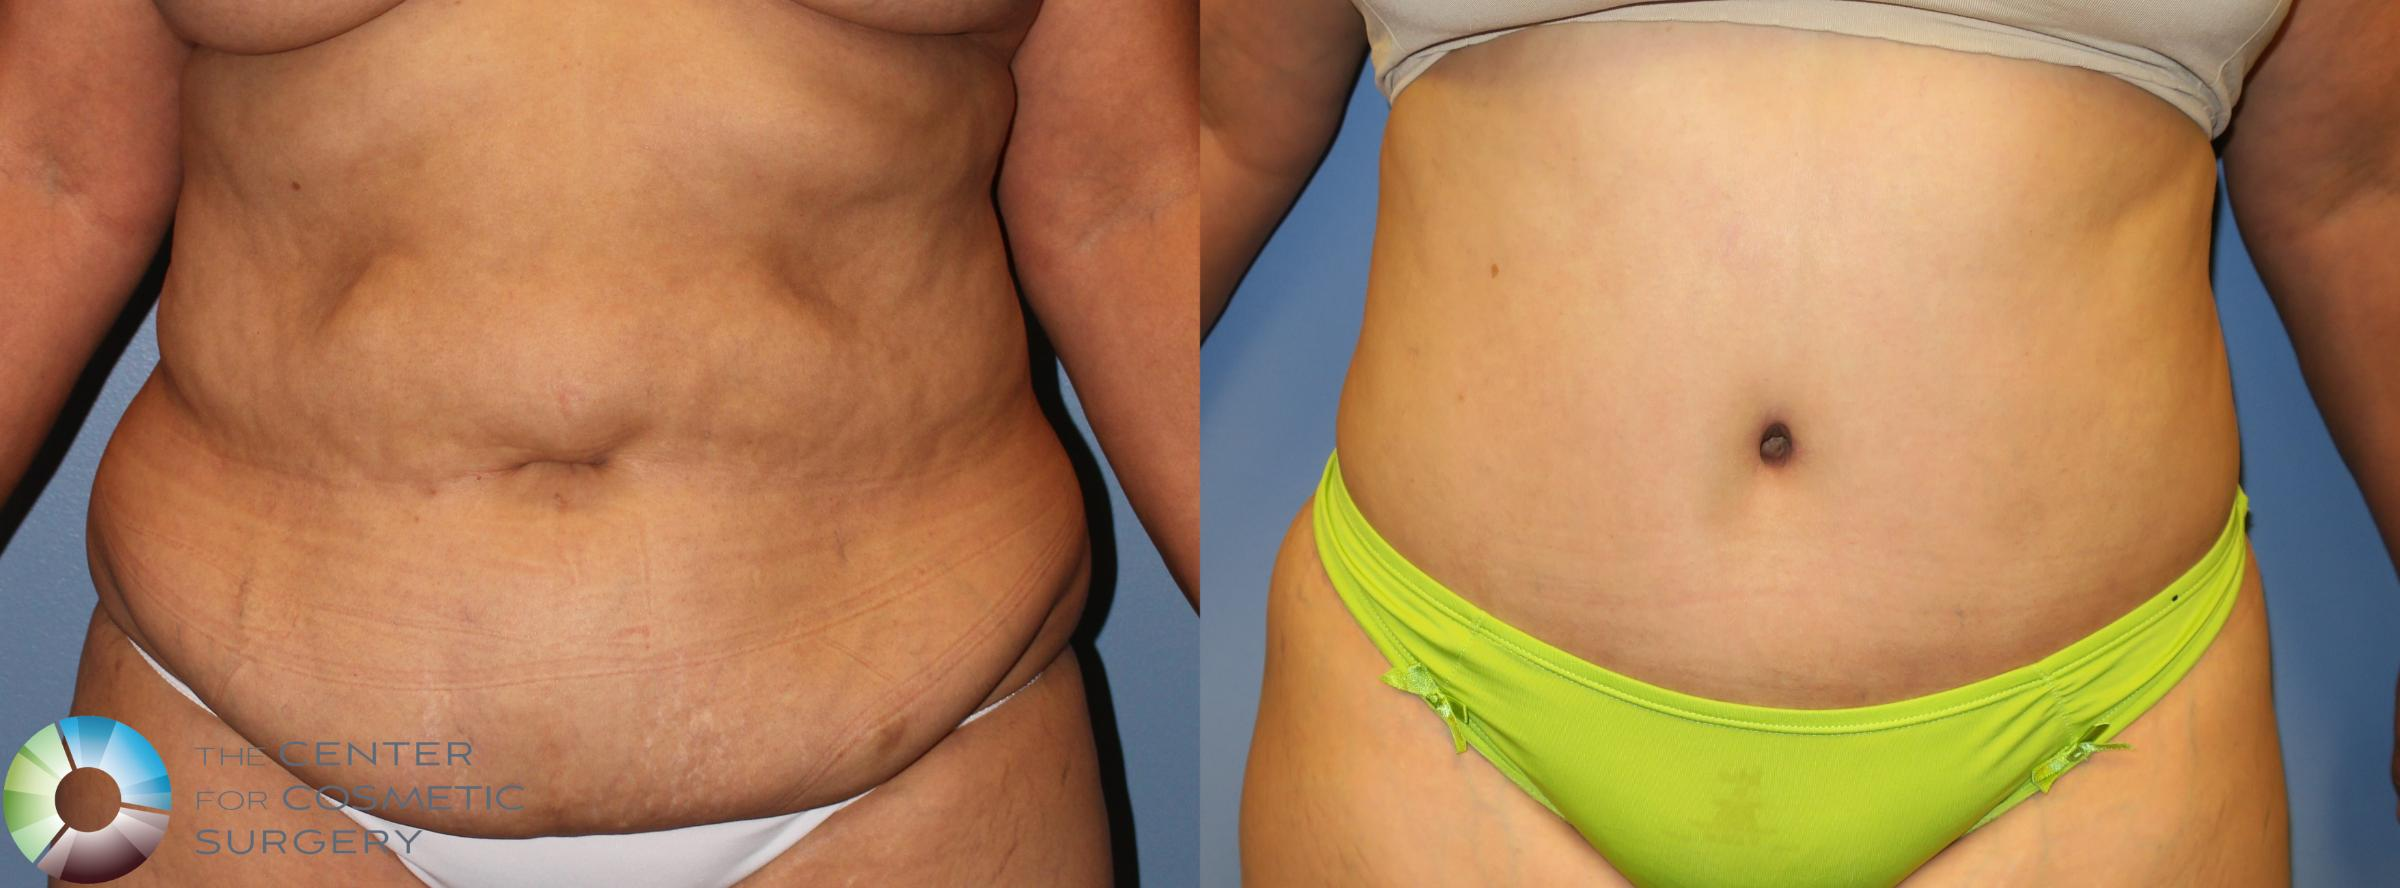 Power-assisted Liposuction Case 945 Before & After View #1 | Golden, CO | The Center for Cosmetic Surgery